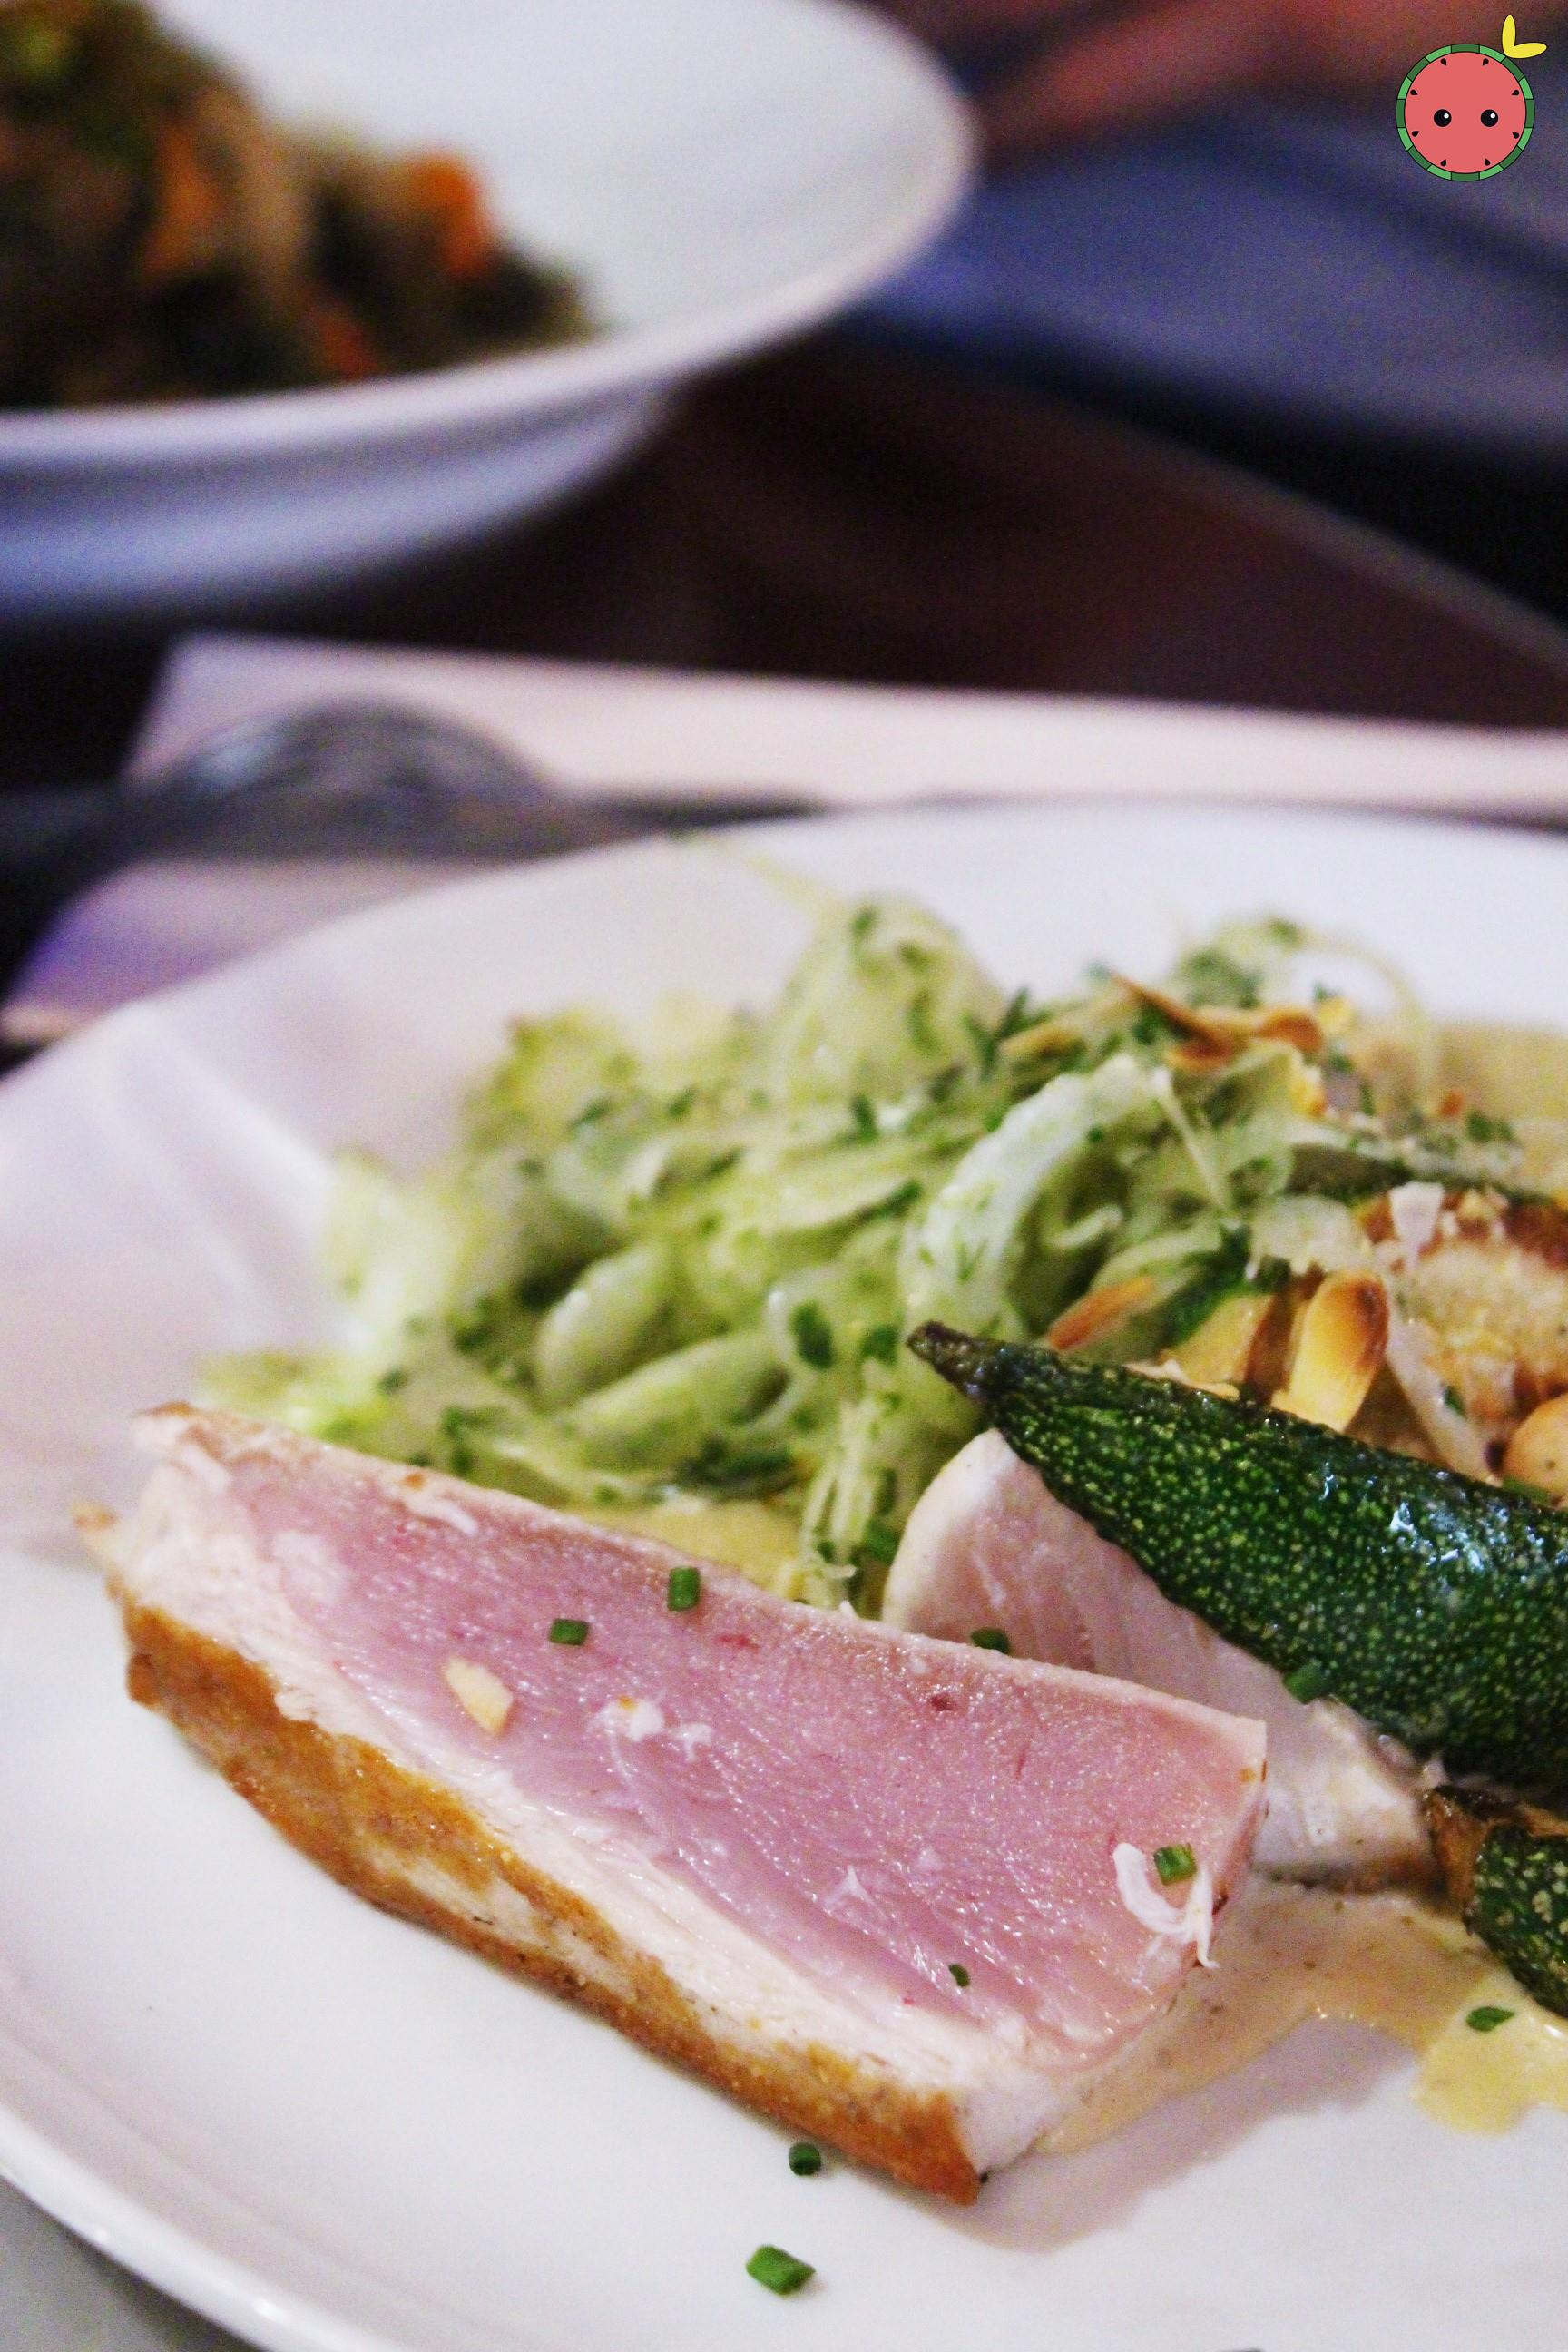 White Tuna, Puree Fennel Confit, Grilled Zucchini, Crispy Salad with Lemon & Roasted Almonds 2